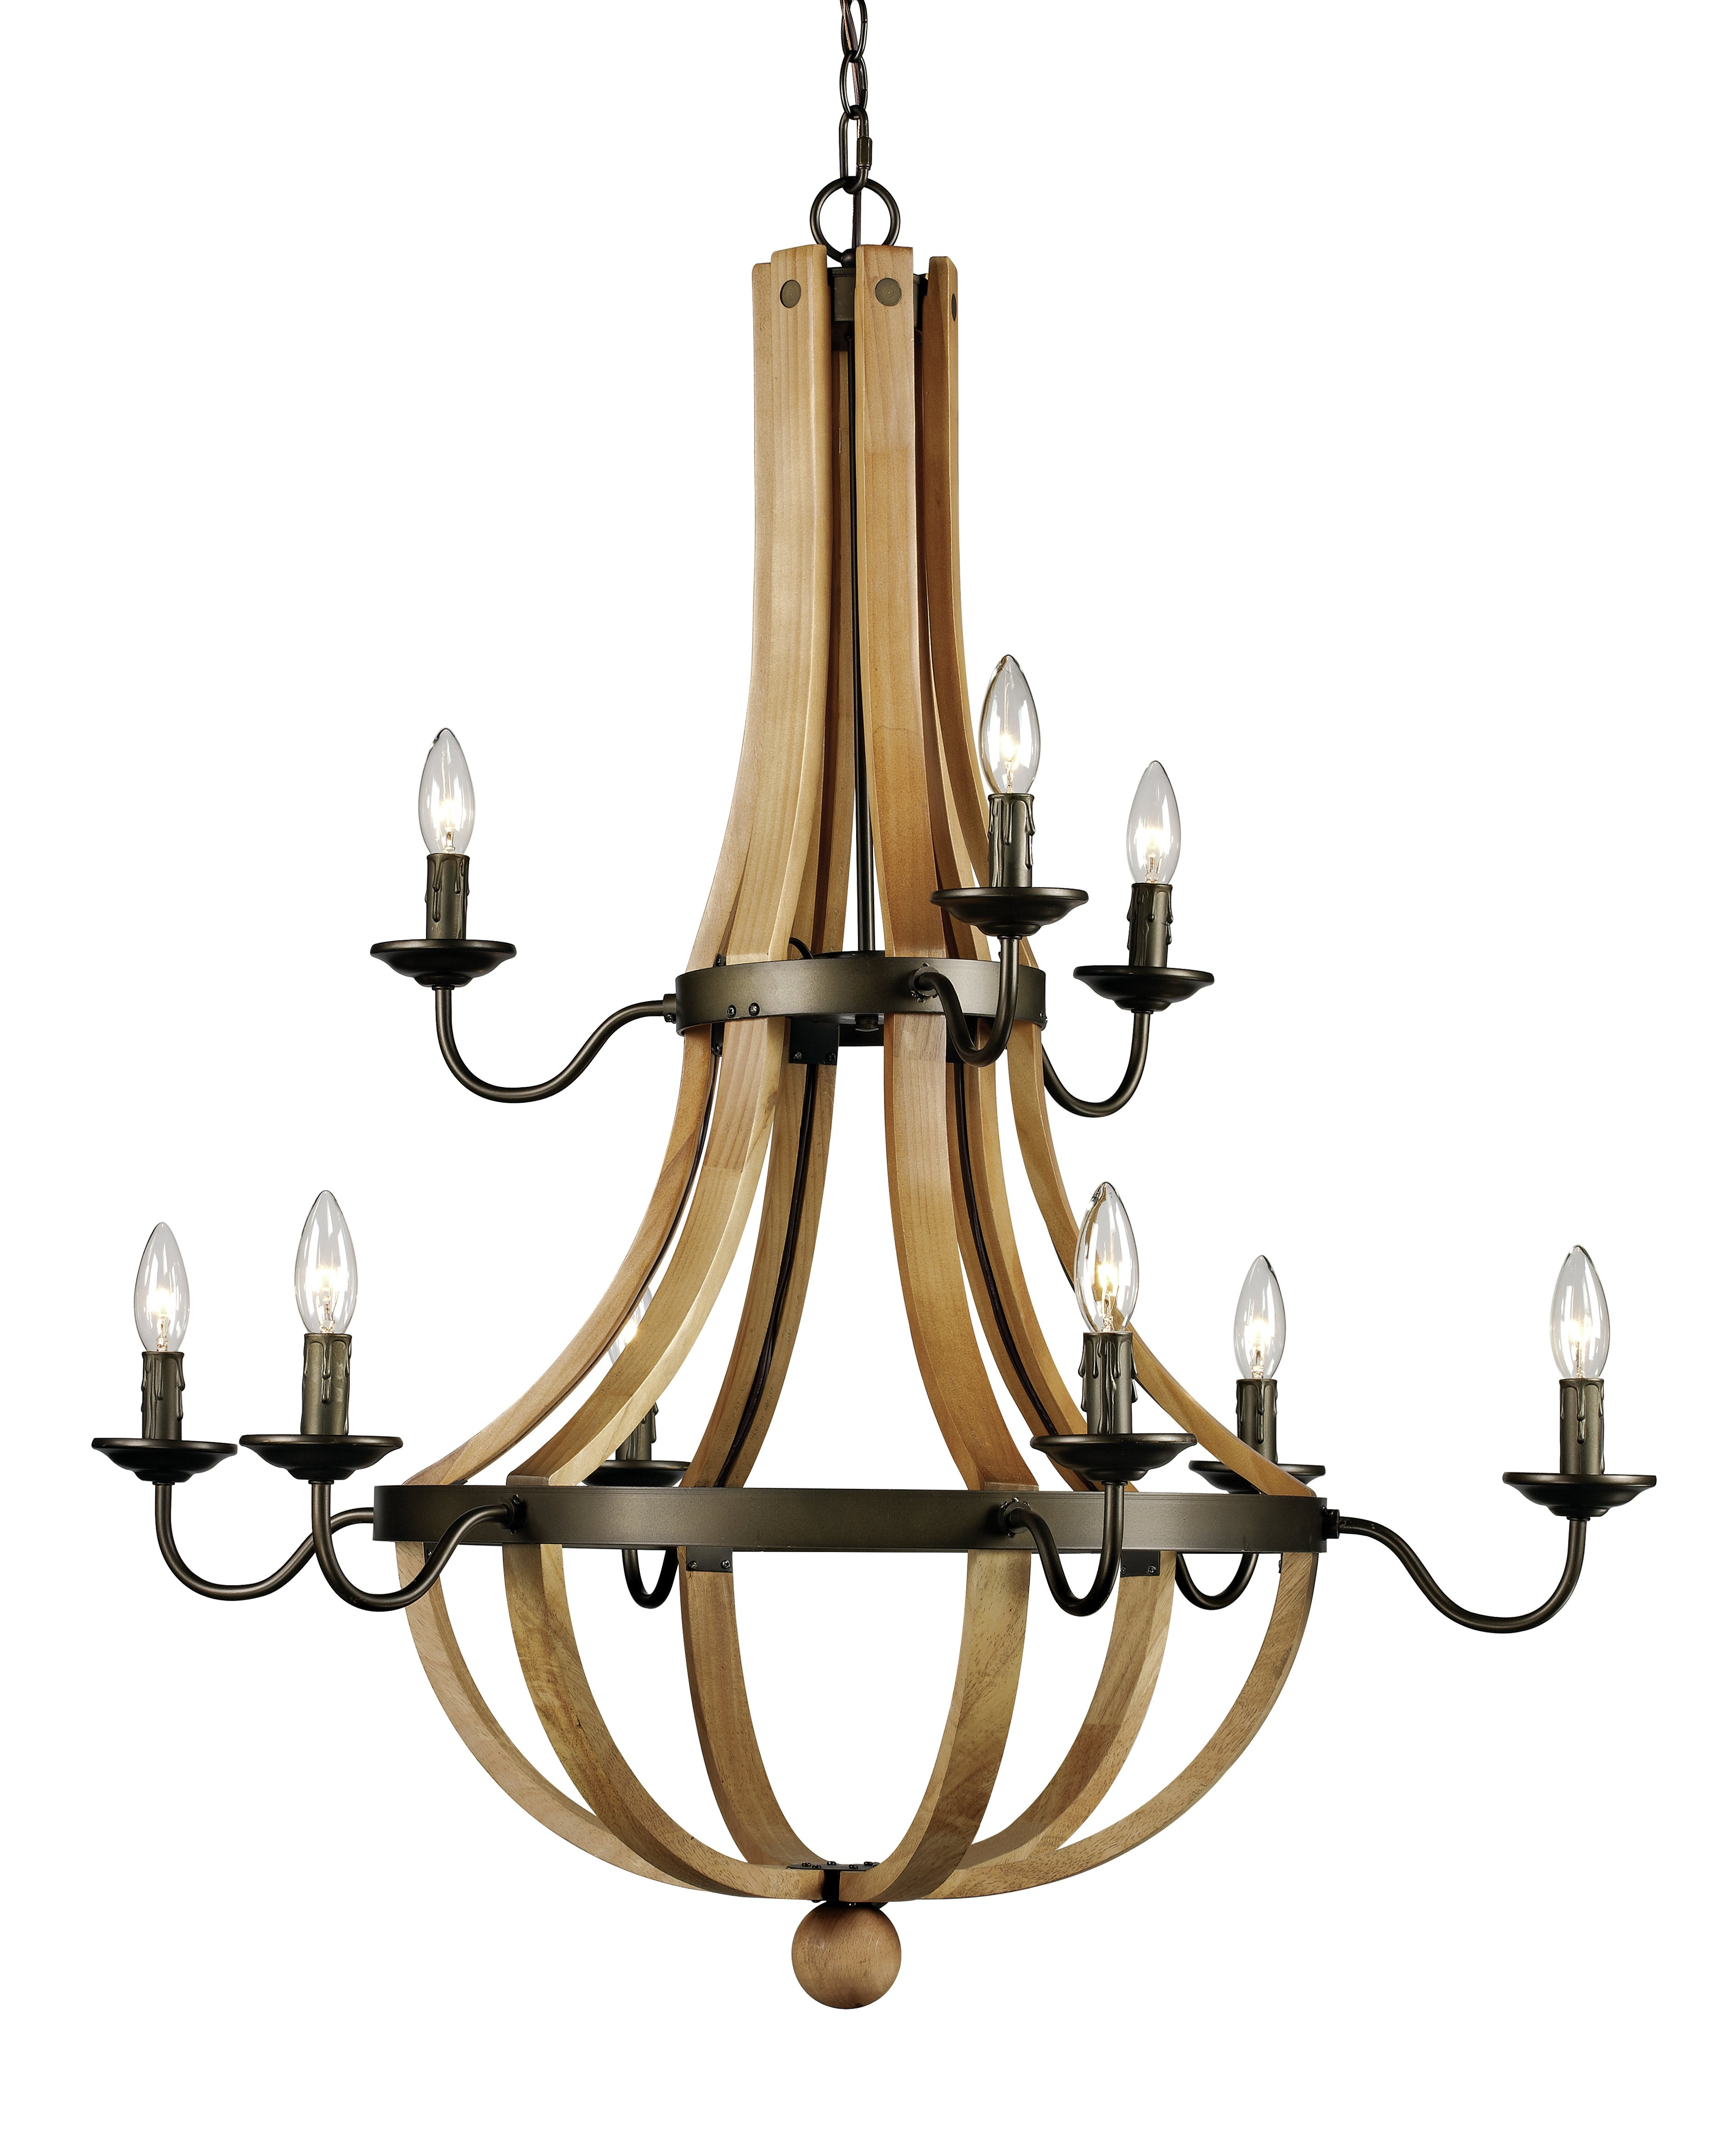 Farmhouse & Rustic 7-10 Chandeliers | Birch Lane regarding Watford 9-Light Candle Style Chandeliers (Image 14 of 30)